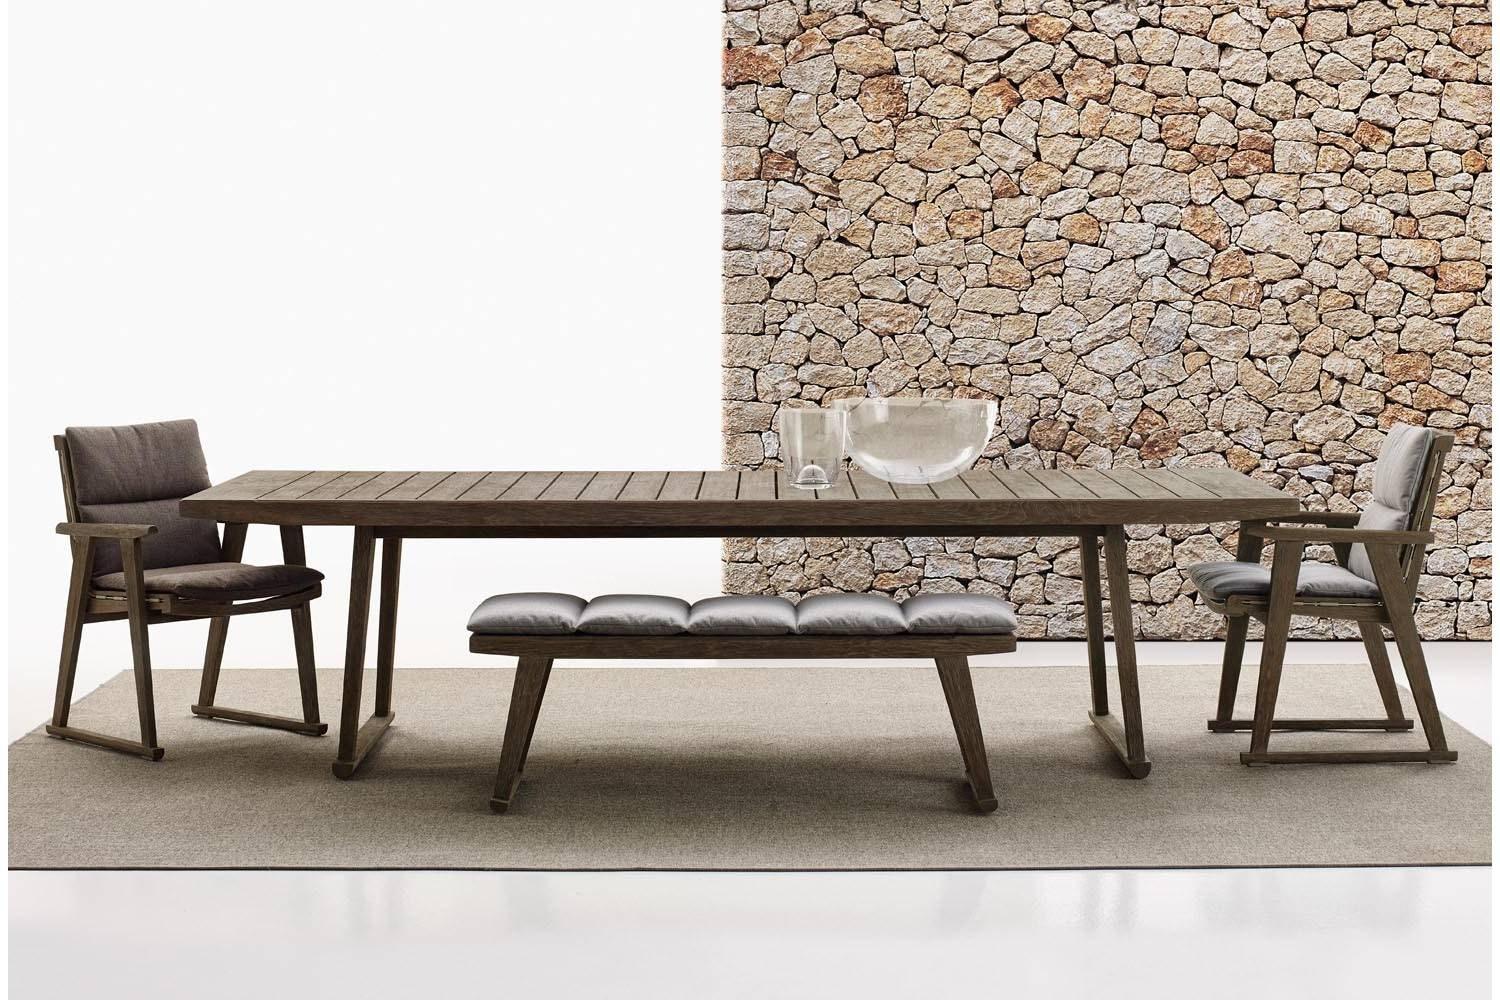 Gio Bench by Antonio Citterio for B&B Italia